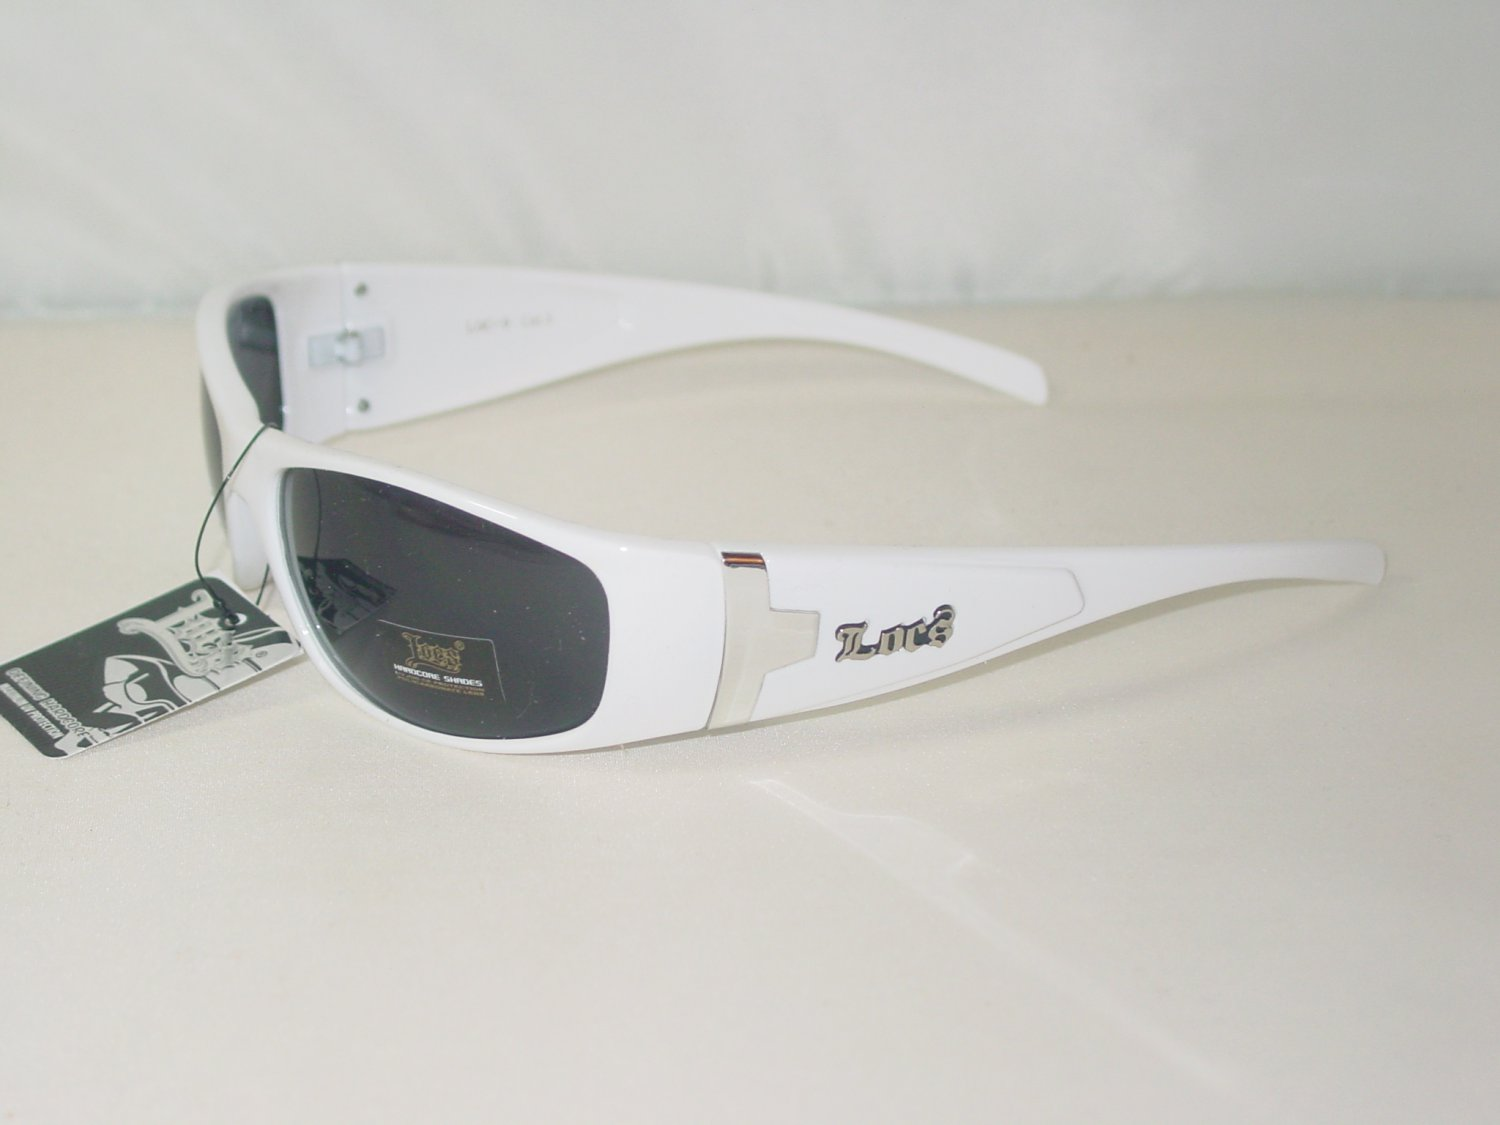 WHITE PLASTIC FRAME SUNGLASSES WITH METAL ACCENT